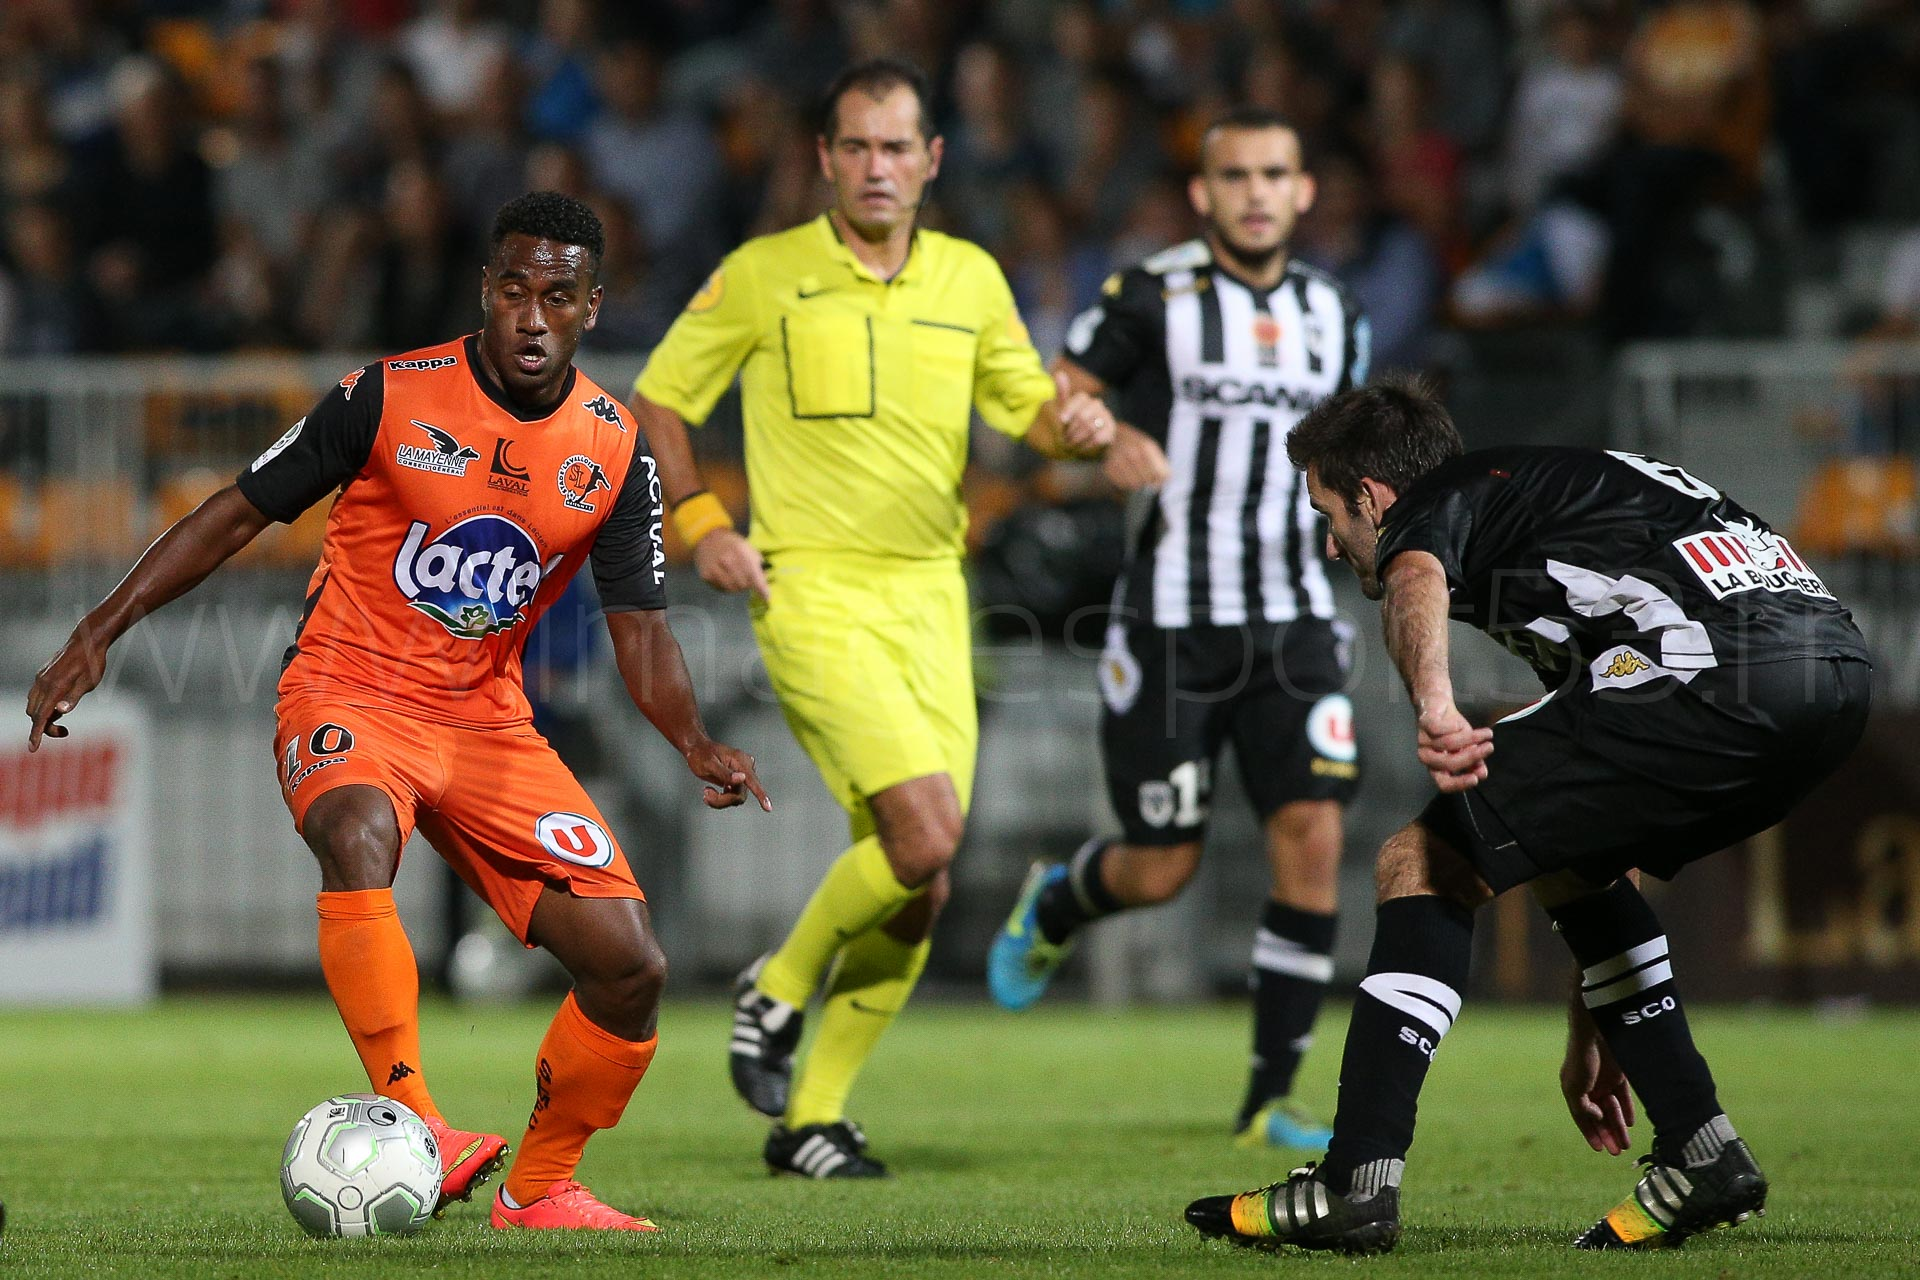 NG-Ligue2-1415-J07-Laval-Angers_27